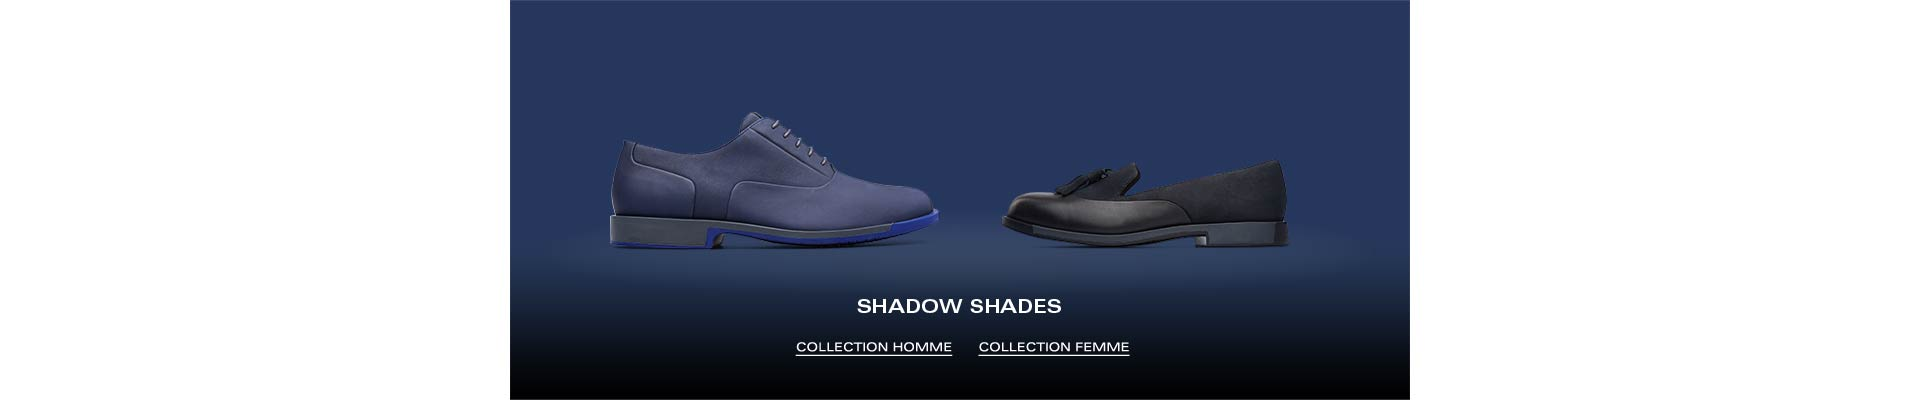 graphic sports SHADOW SHADES